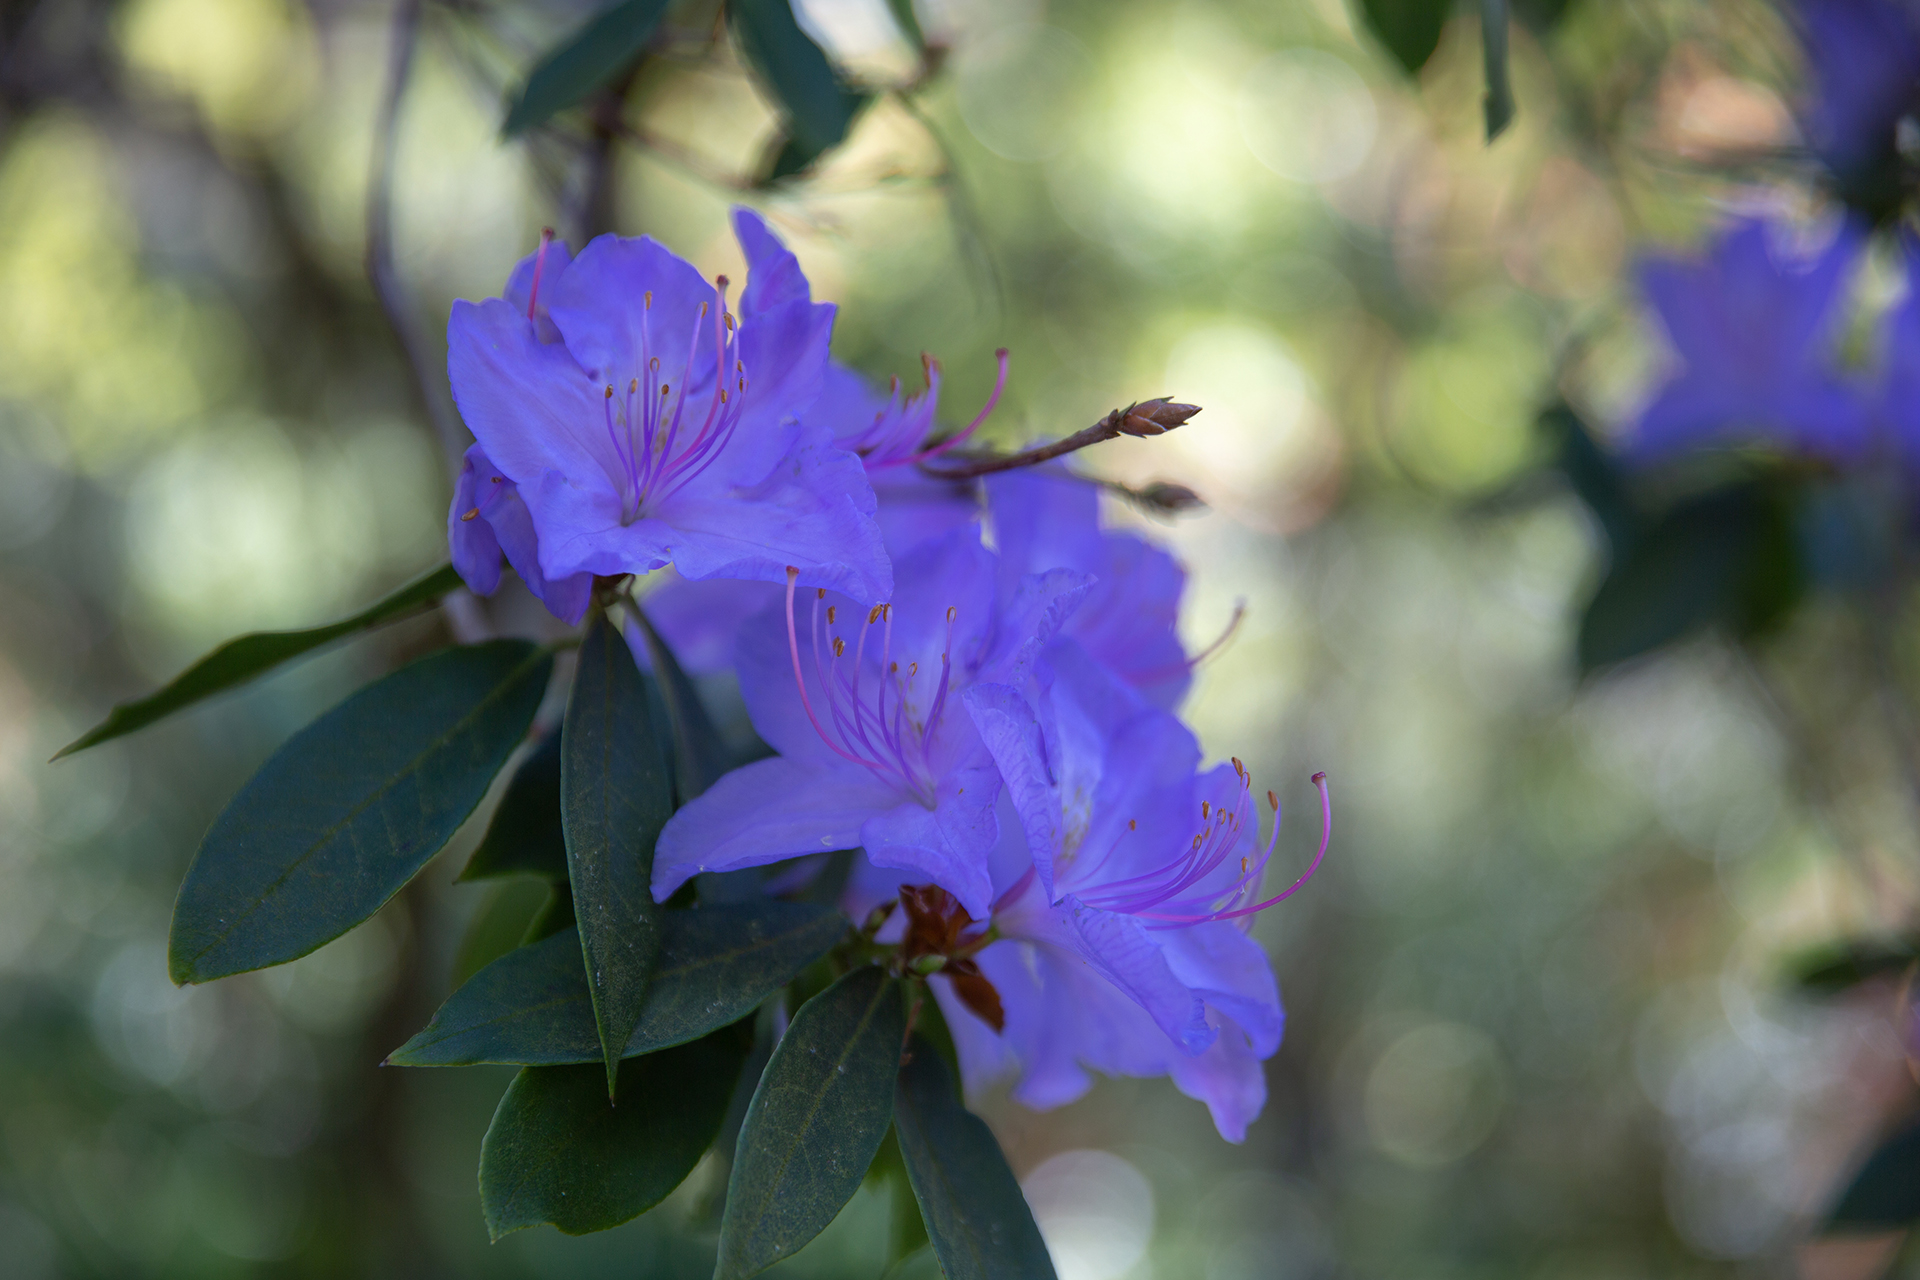 rhododendron augustinii hybrid (1 of 1)